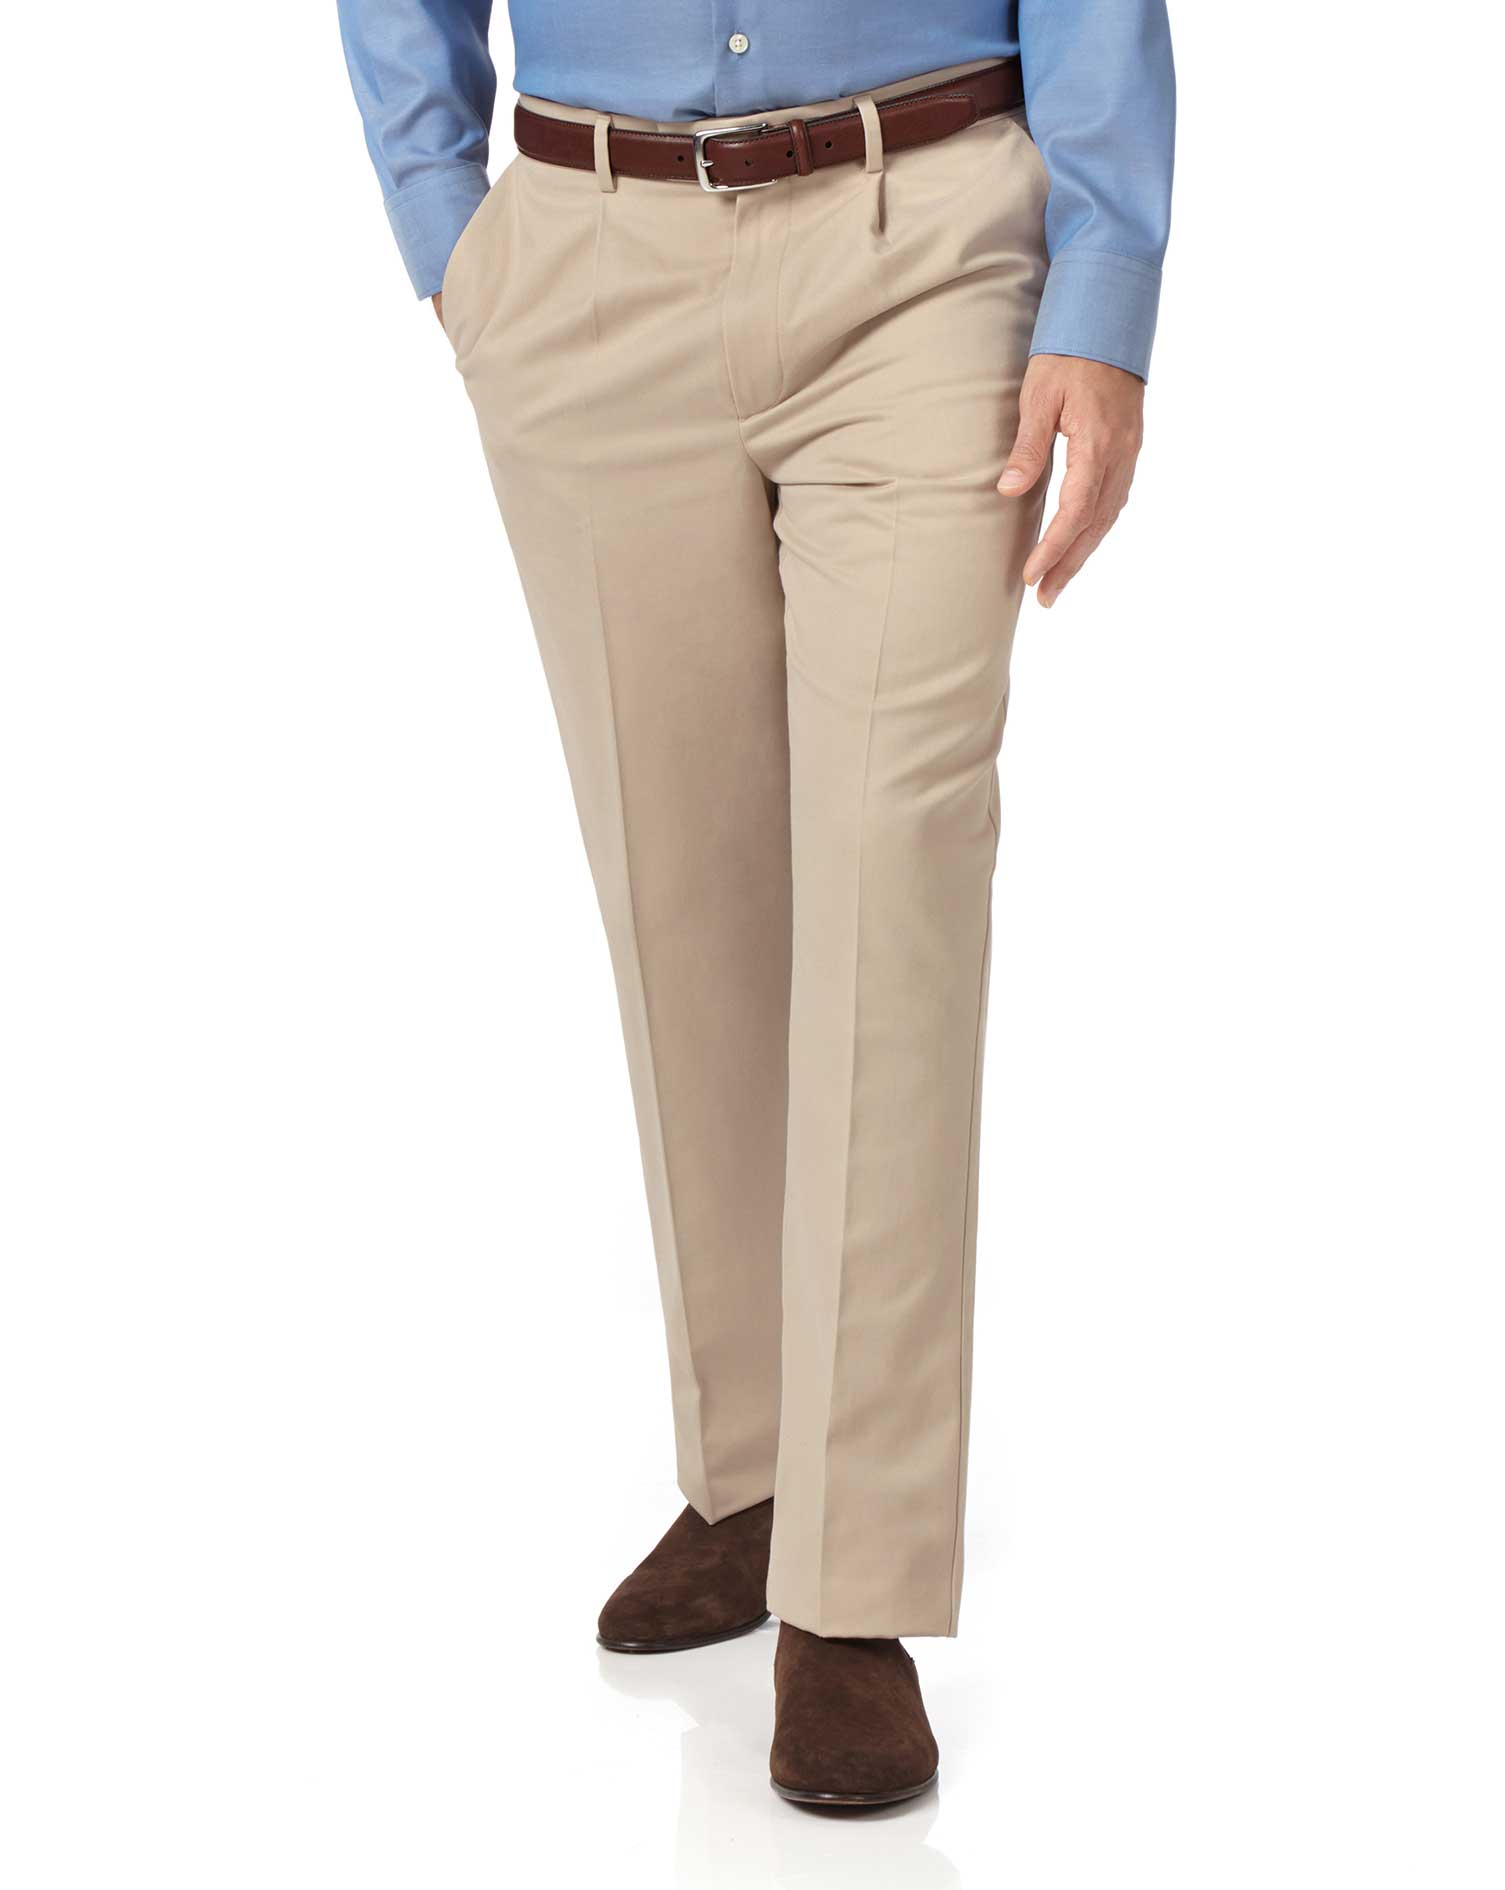 Stone Classic Fit Single Pleat Non-Iron Cotton Chino Trousers Size W36 L30 by Charles Tyrwhitt